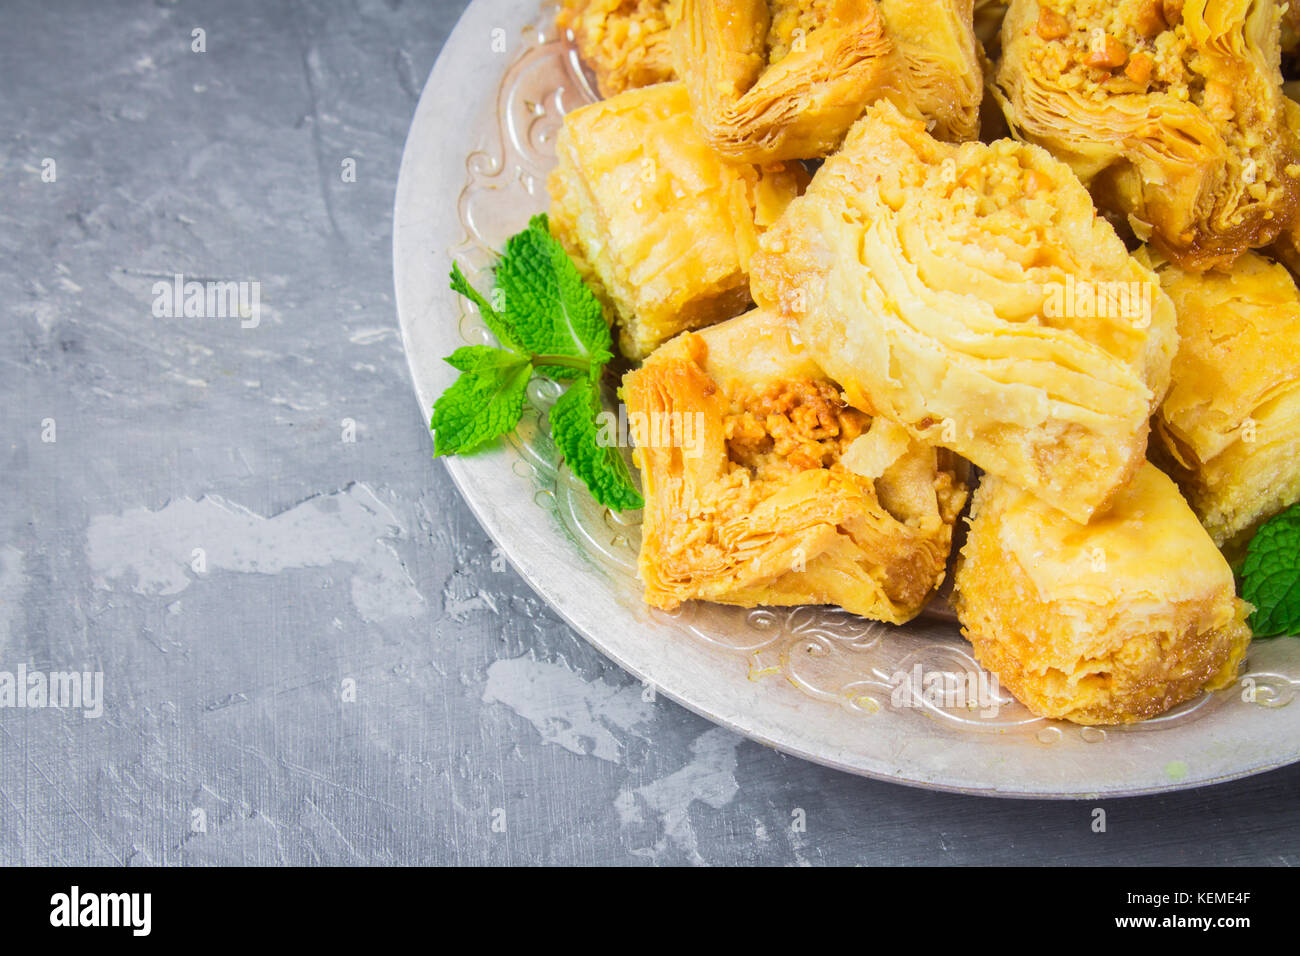 baklava turkish traditional delight on a dark wood background. toning - Stock Image